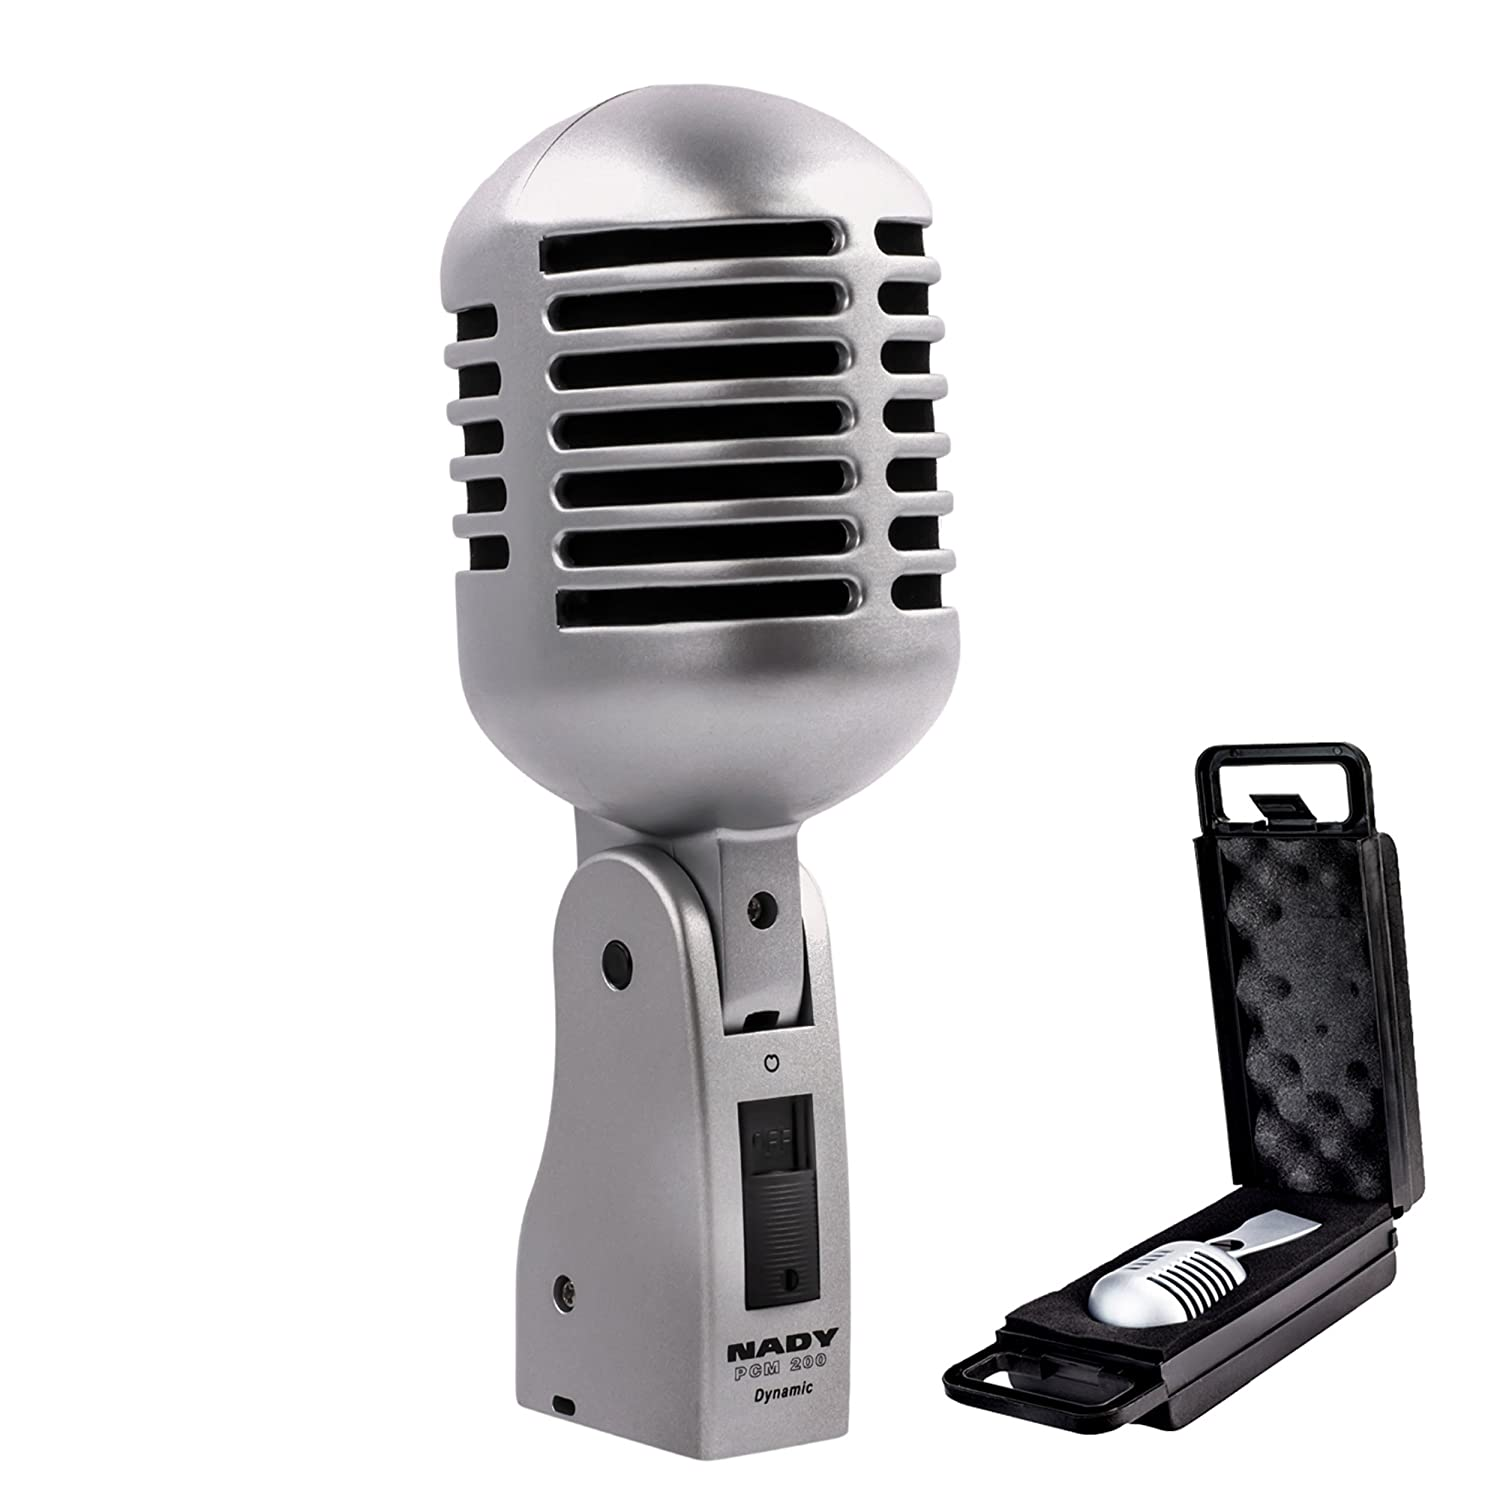 Nady PCM-200 Professional Classic Style Dynamic Microphone - Retro style vocal mic with carrying case, on/off switch, low-cut filter - Vintage look Nady CA PCM200